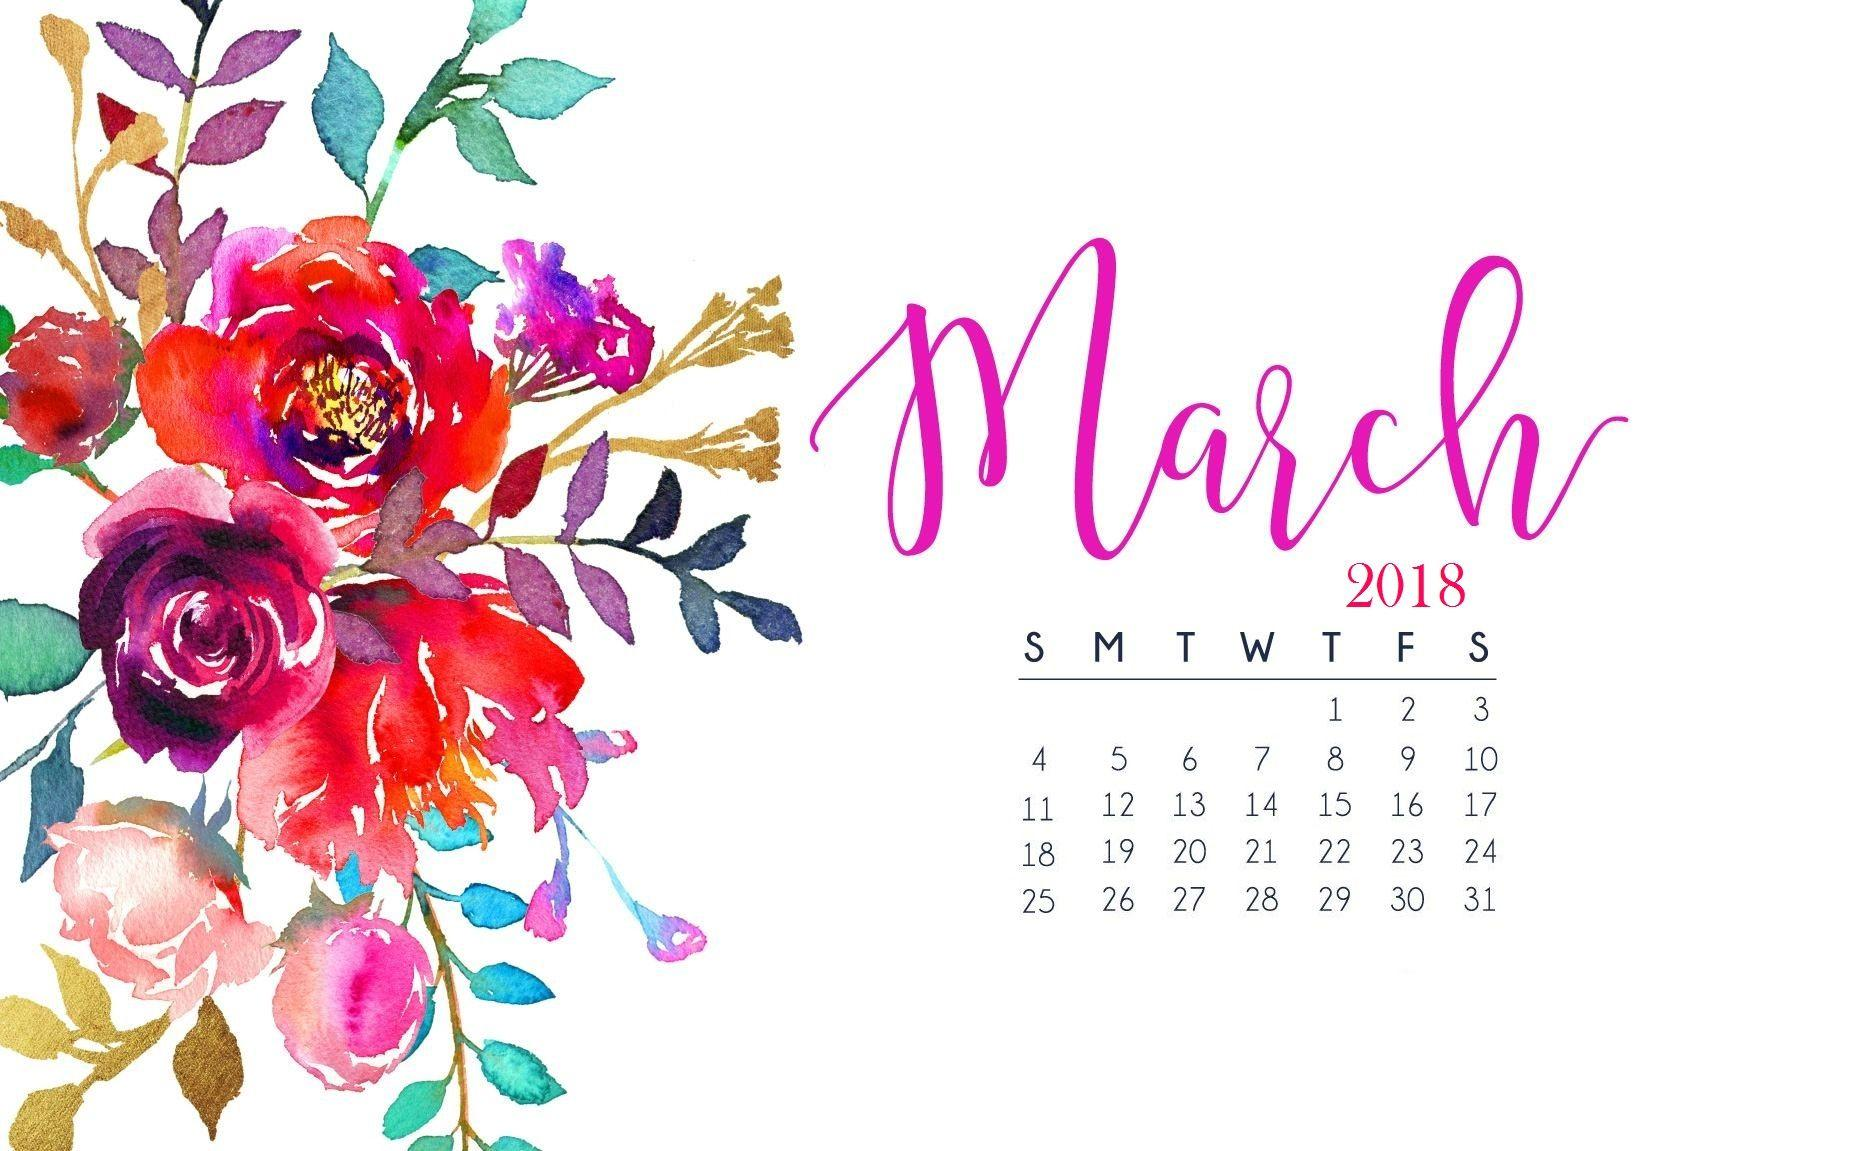 Dawn nicole january 2018 calendar wallpaper